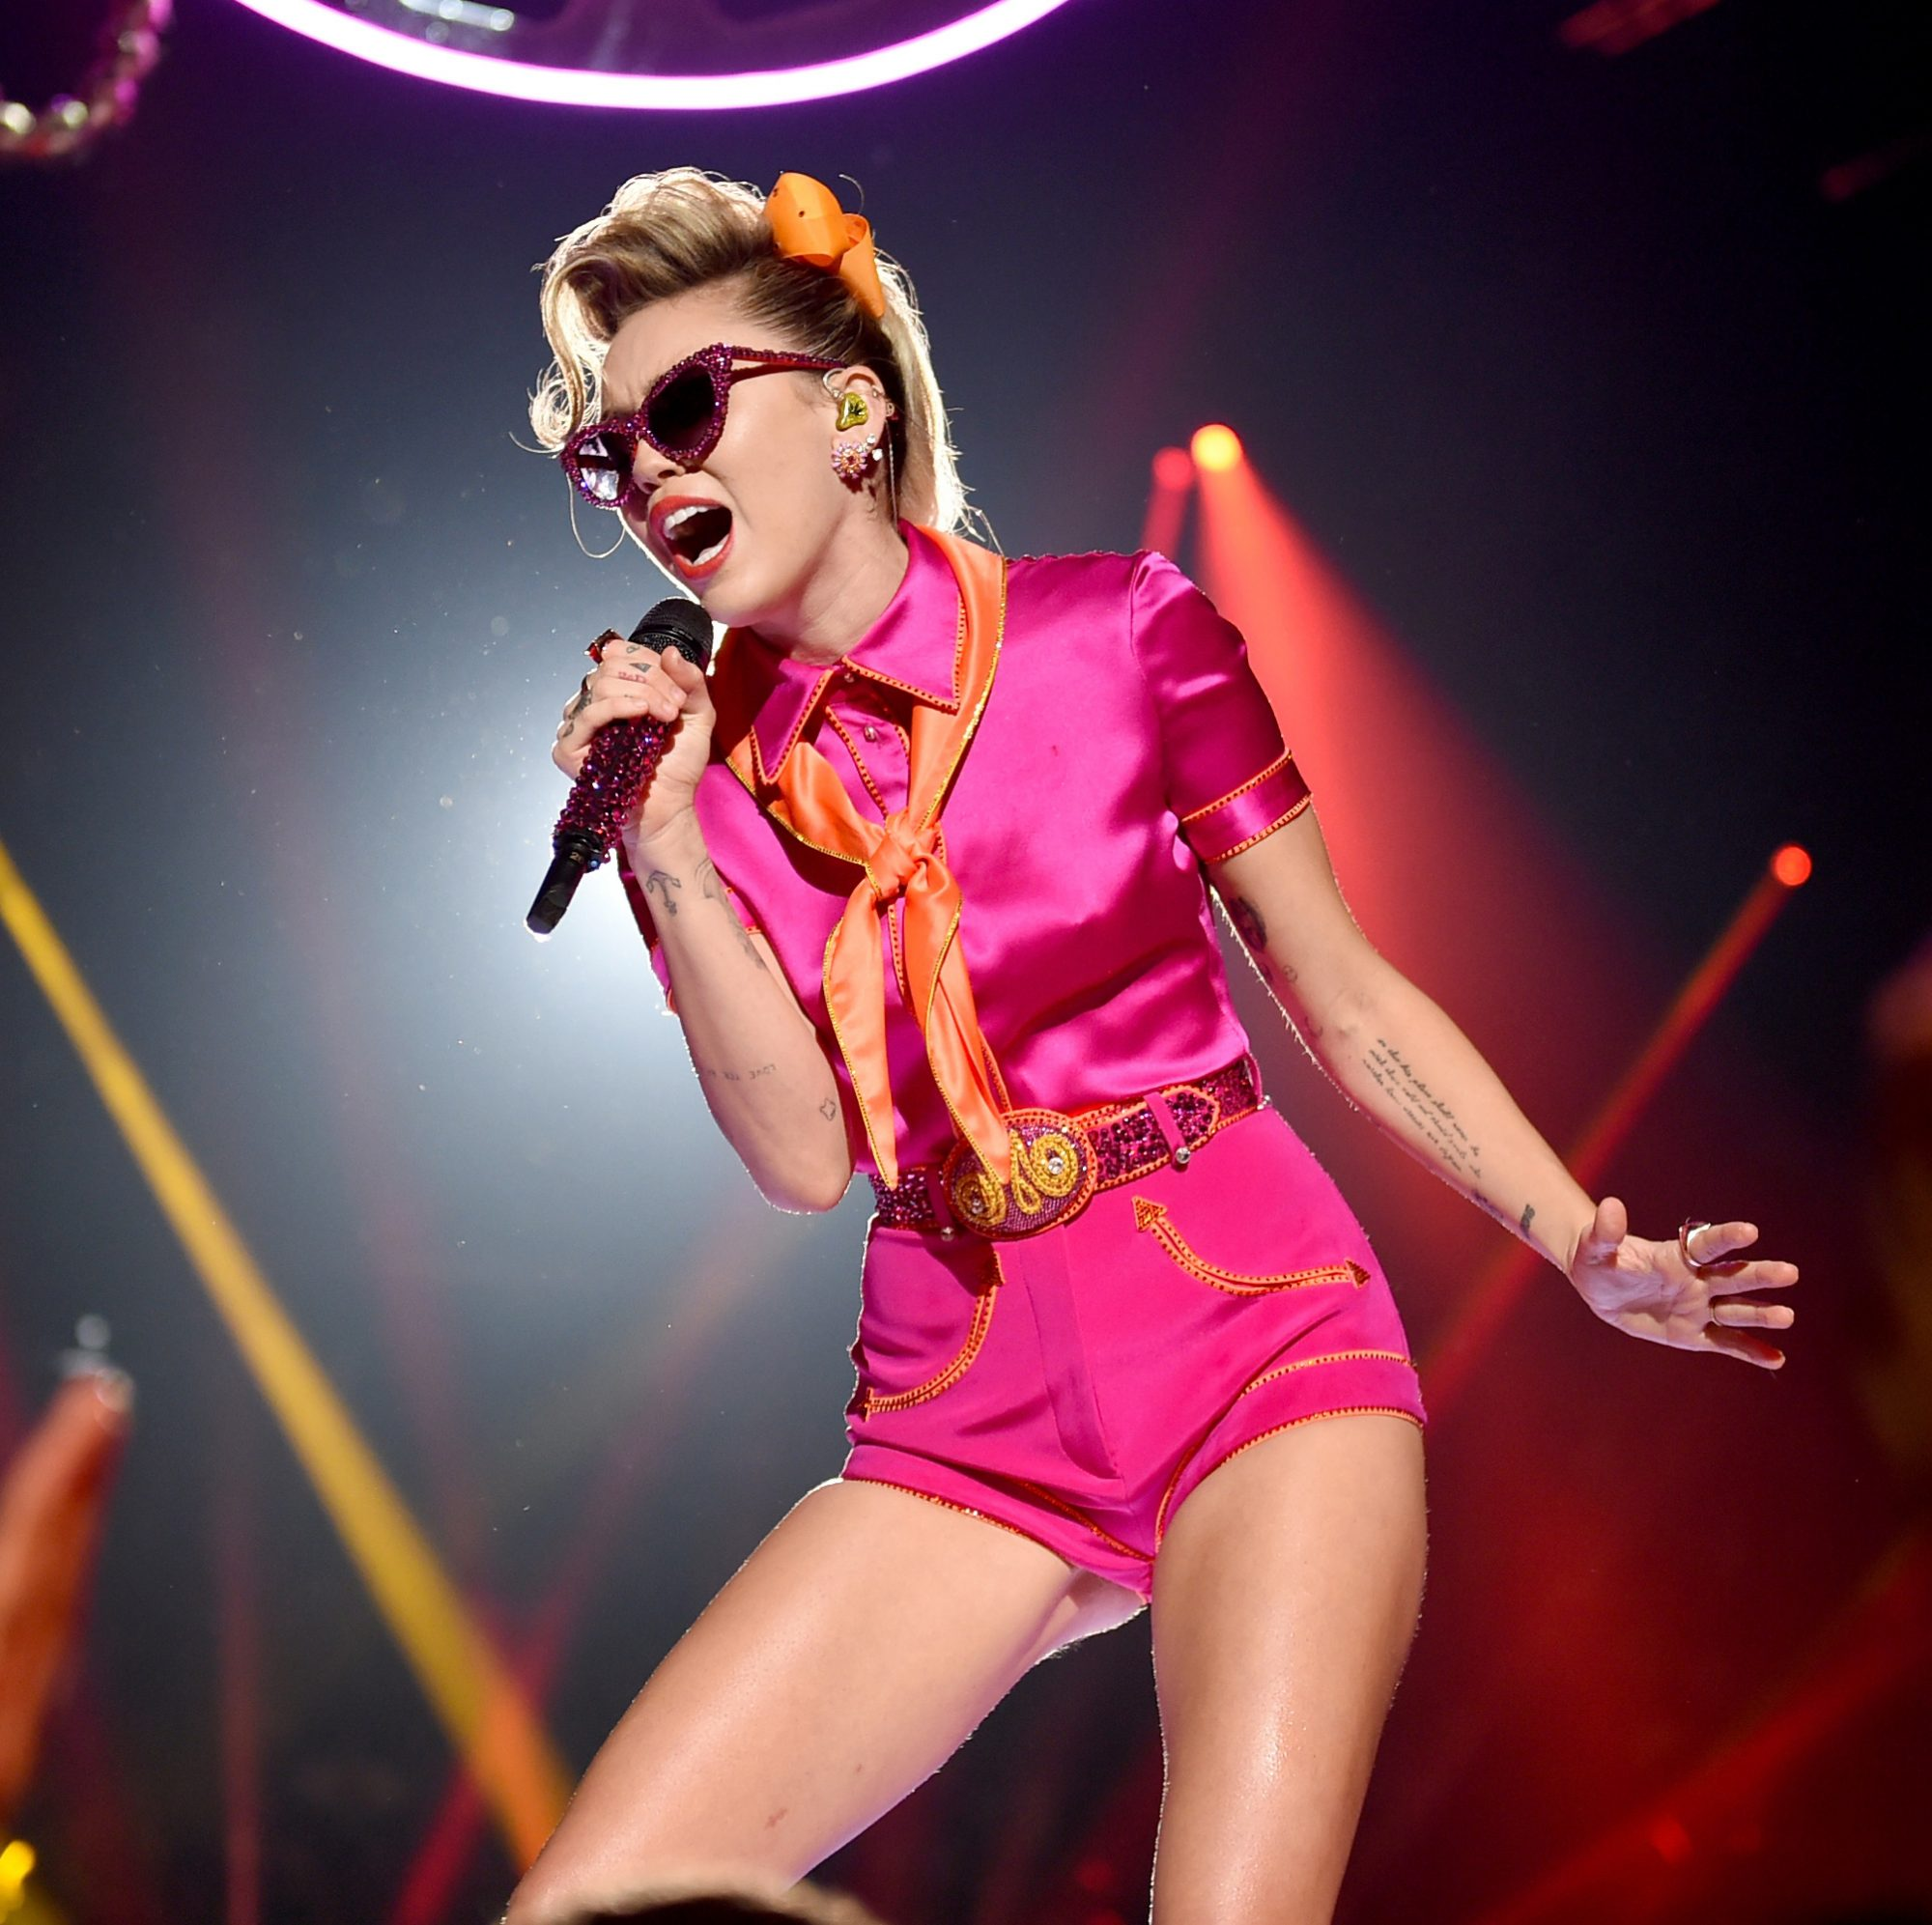 This Is the Miley Cyrus Performance We All Needed